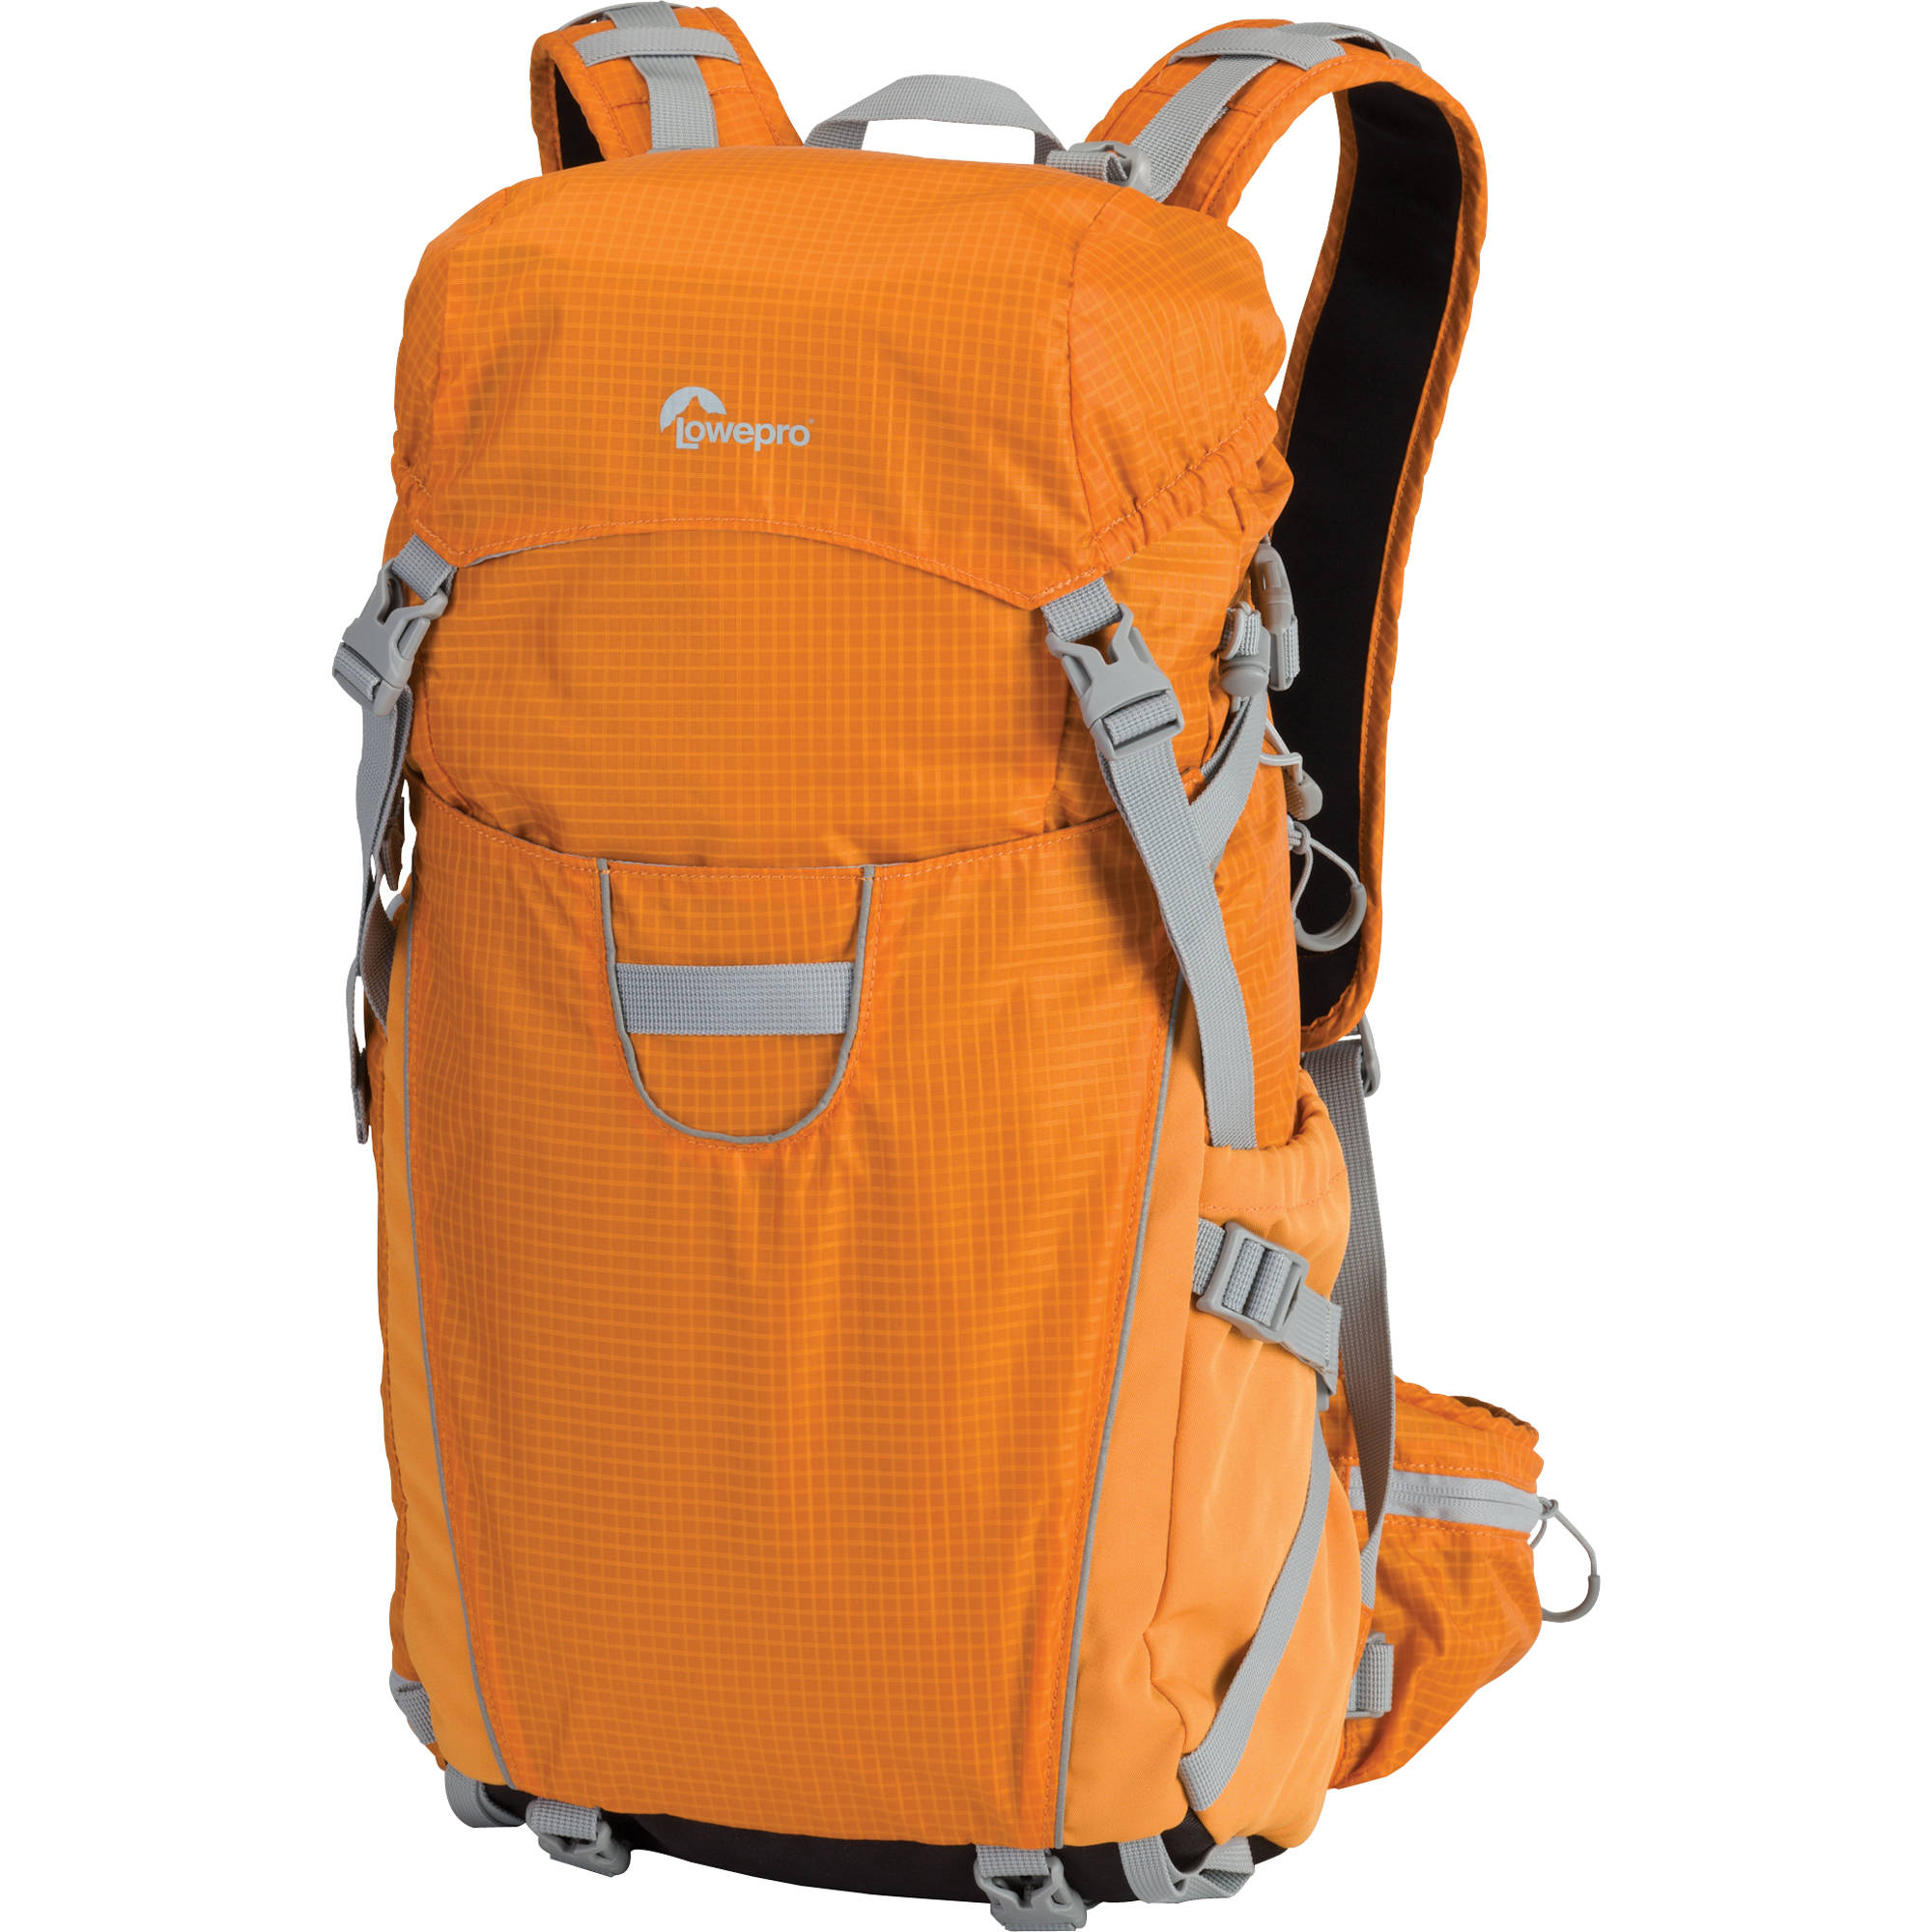 Lowepro Photo Sport 200 AW Backpack (Orange) LP36354 B&H Photo